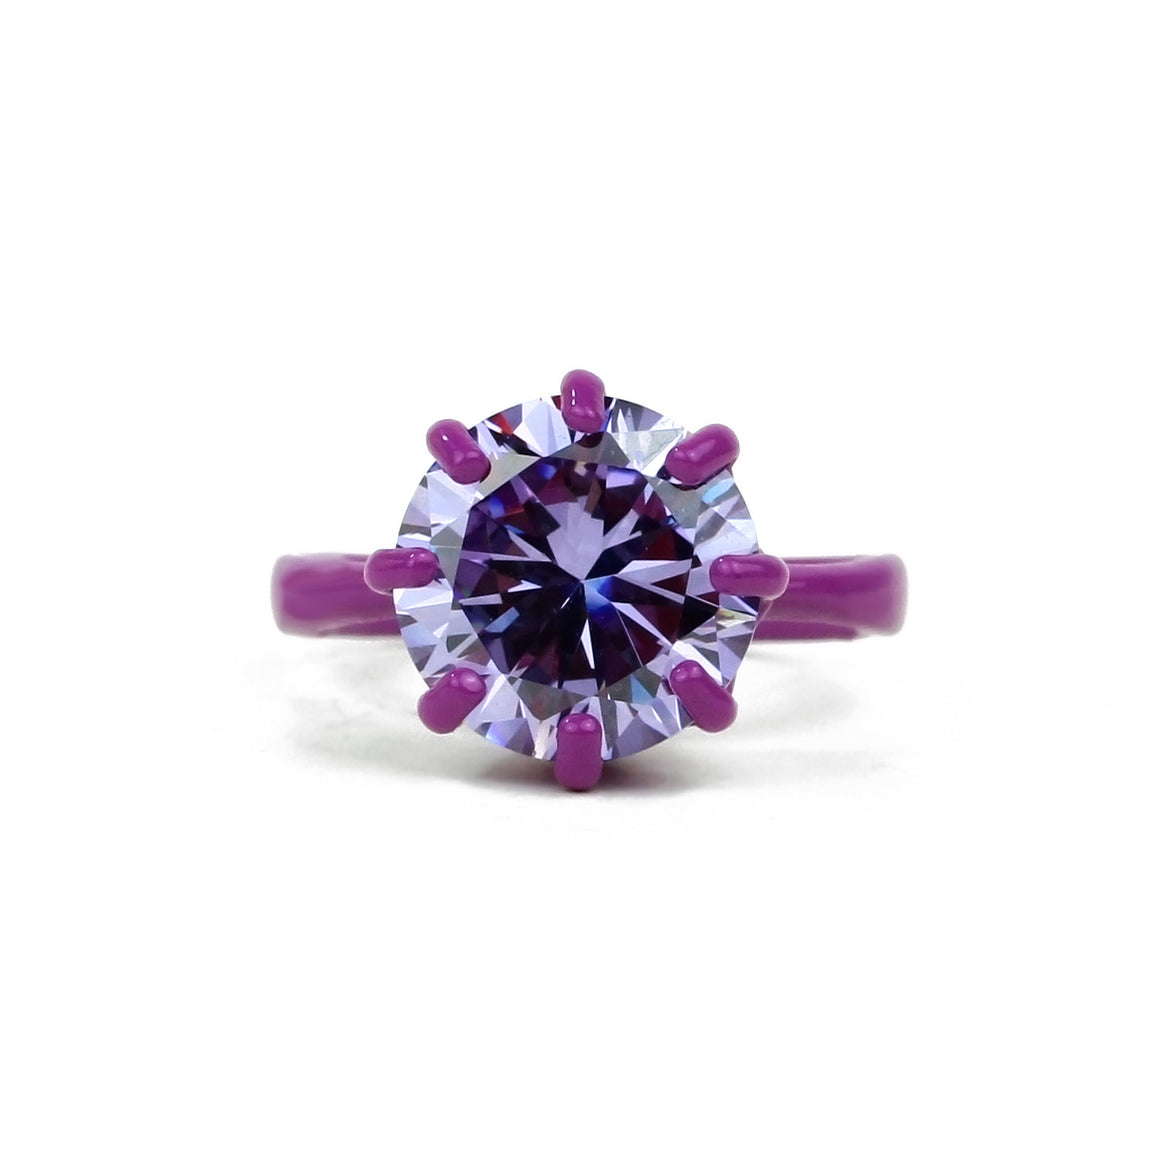 OMG Bling Ring in Purple - 11mm Round Stone - Sizes 6, 7, and 8